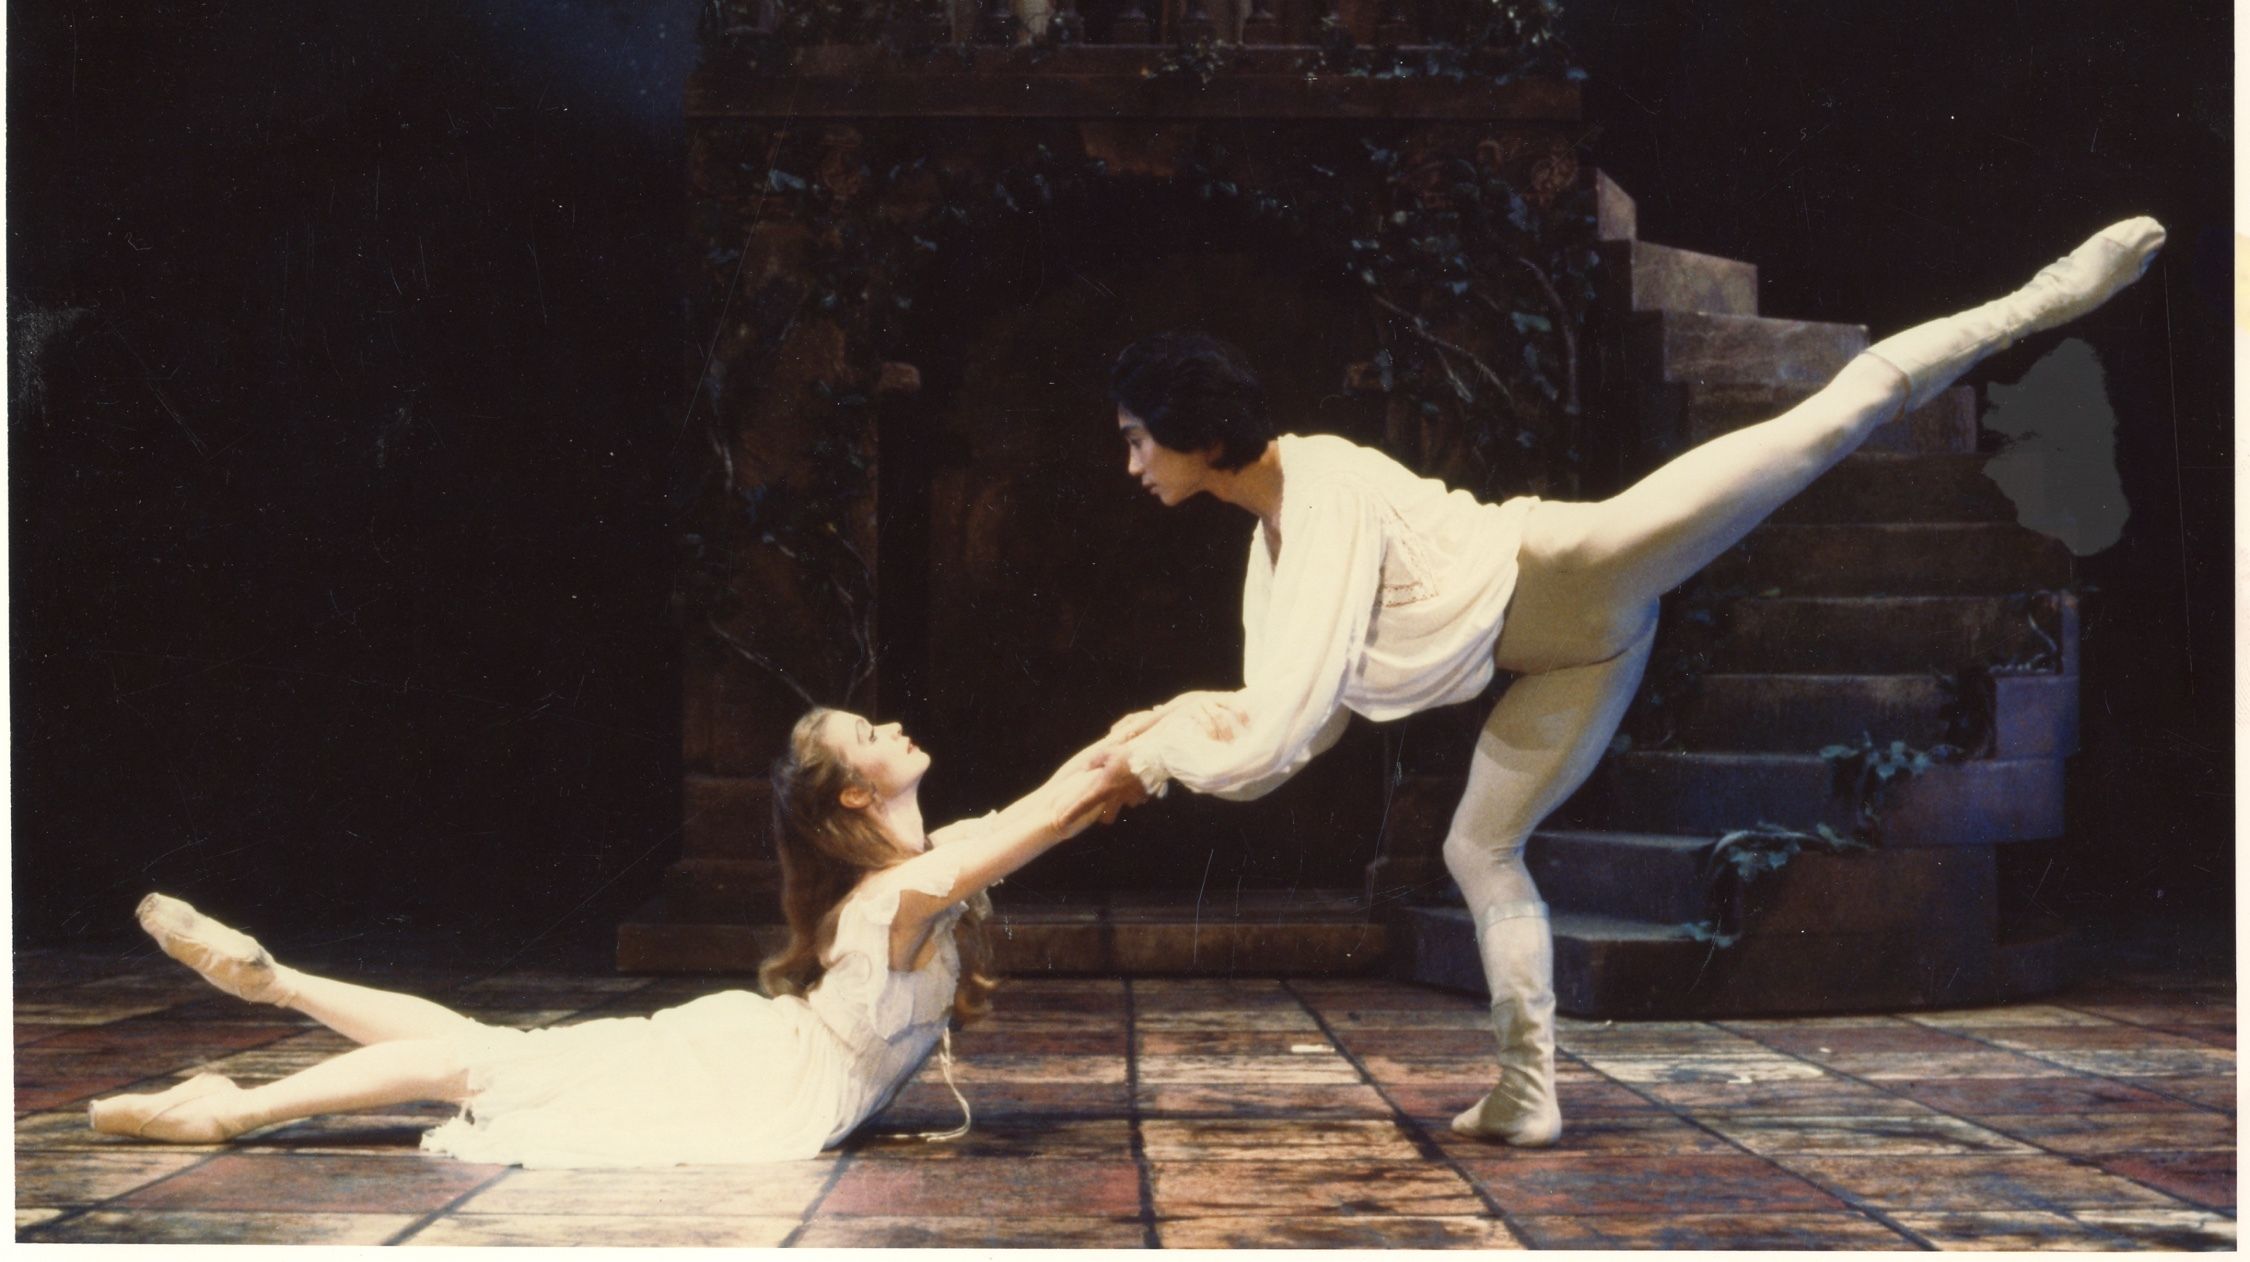 Li Cunxin and Janie Parker in Romeo and Juliet in 1987